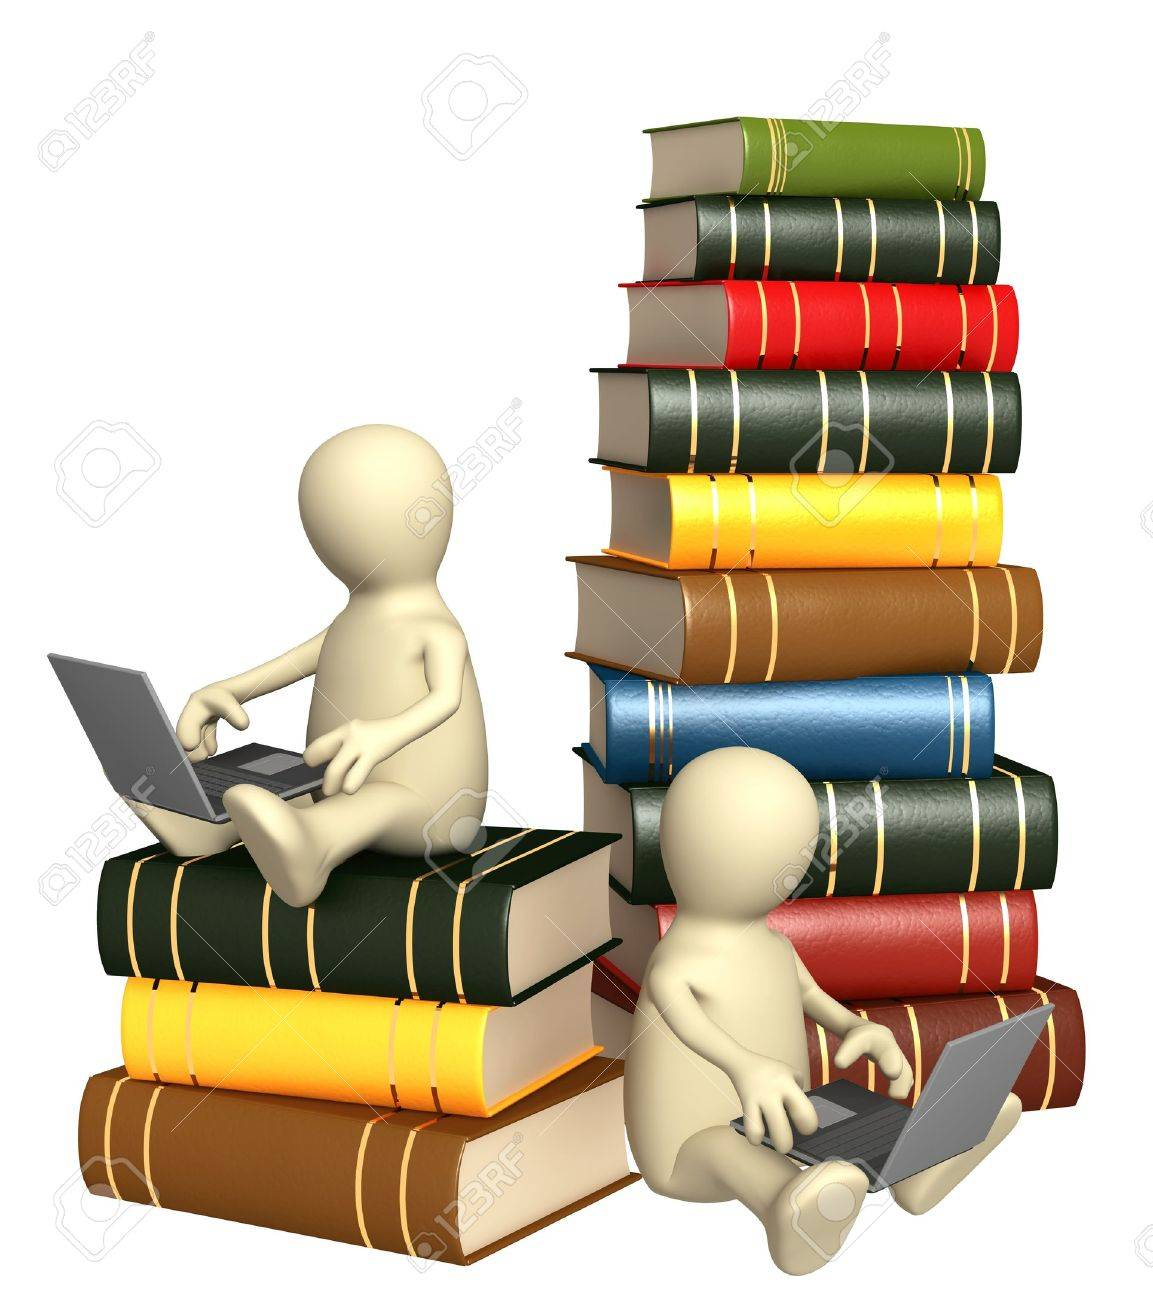 Library online. Two puppets with laptops Stock Photo - 8948510